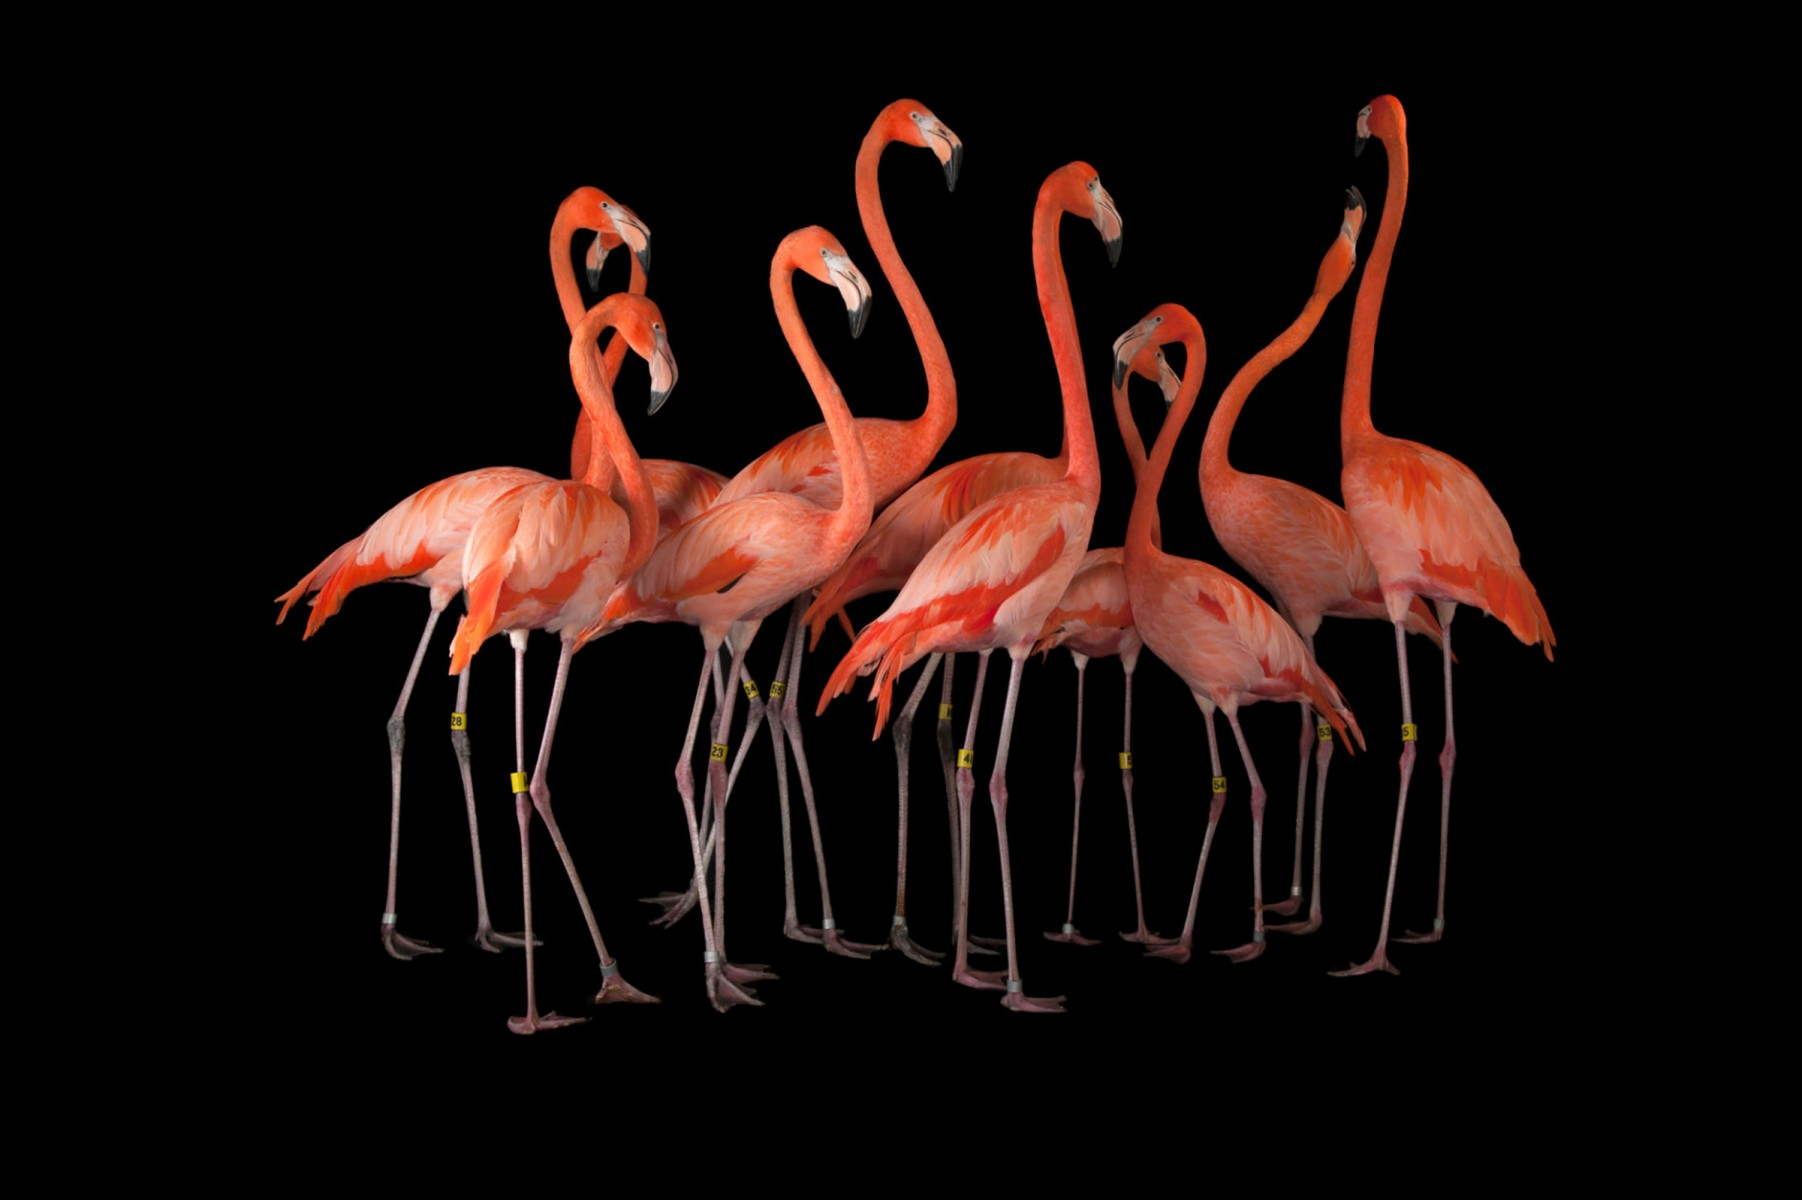 A group of American flamigos, Phoenicopterus ruber.